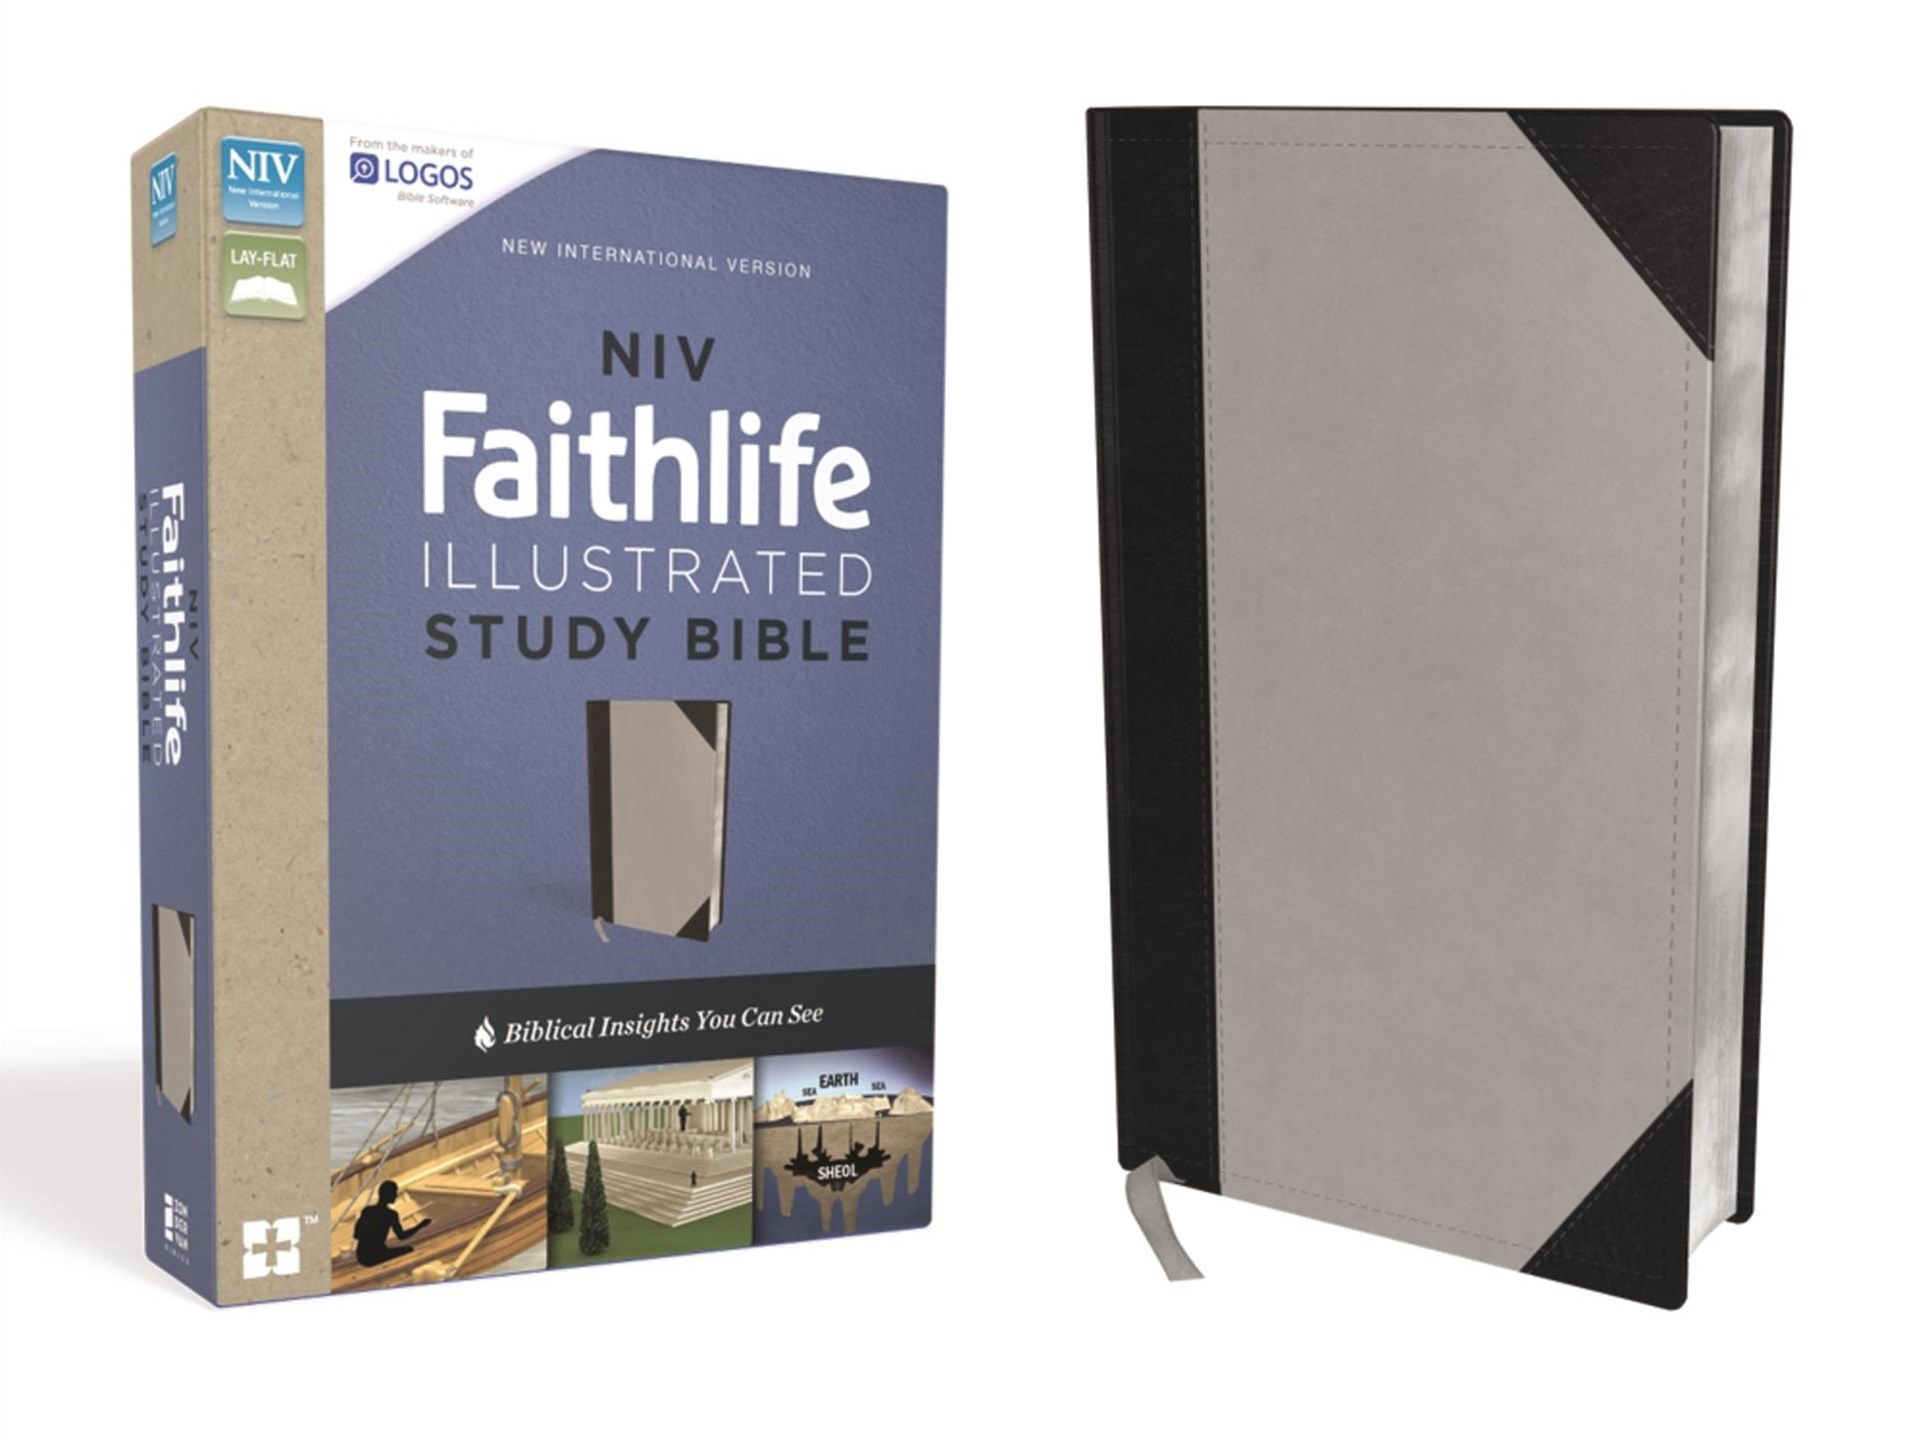 NIV Faithlife Illustrated Study Bible, Indexed: Biblical Insights You Can See [Gray/Black]